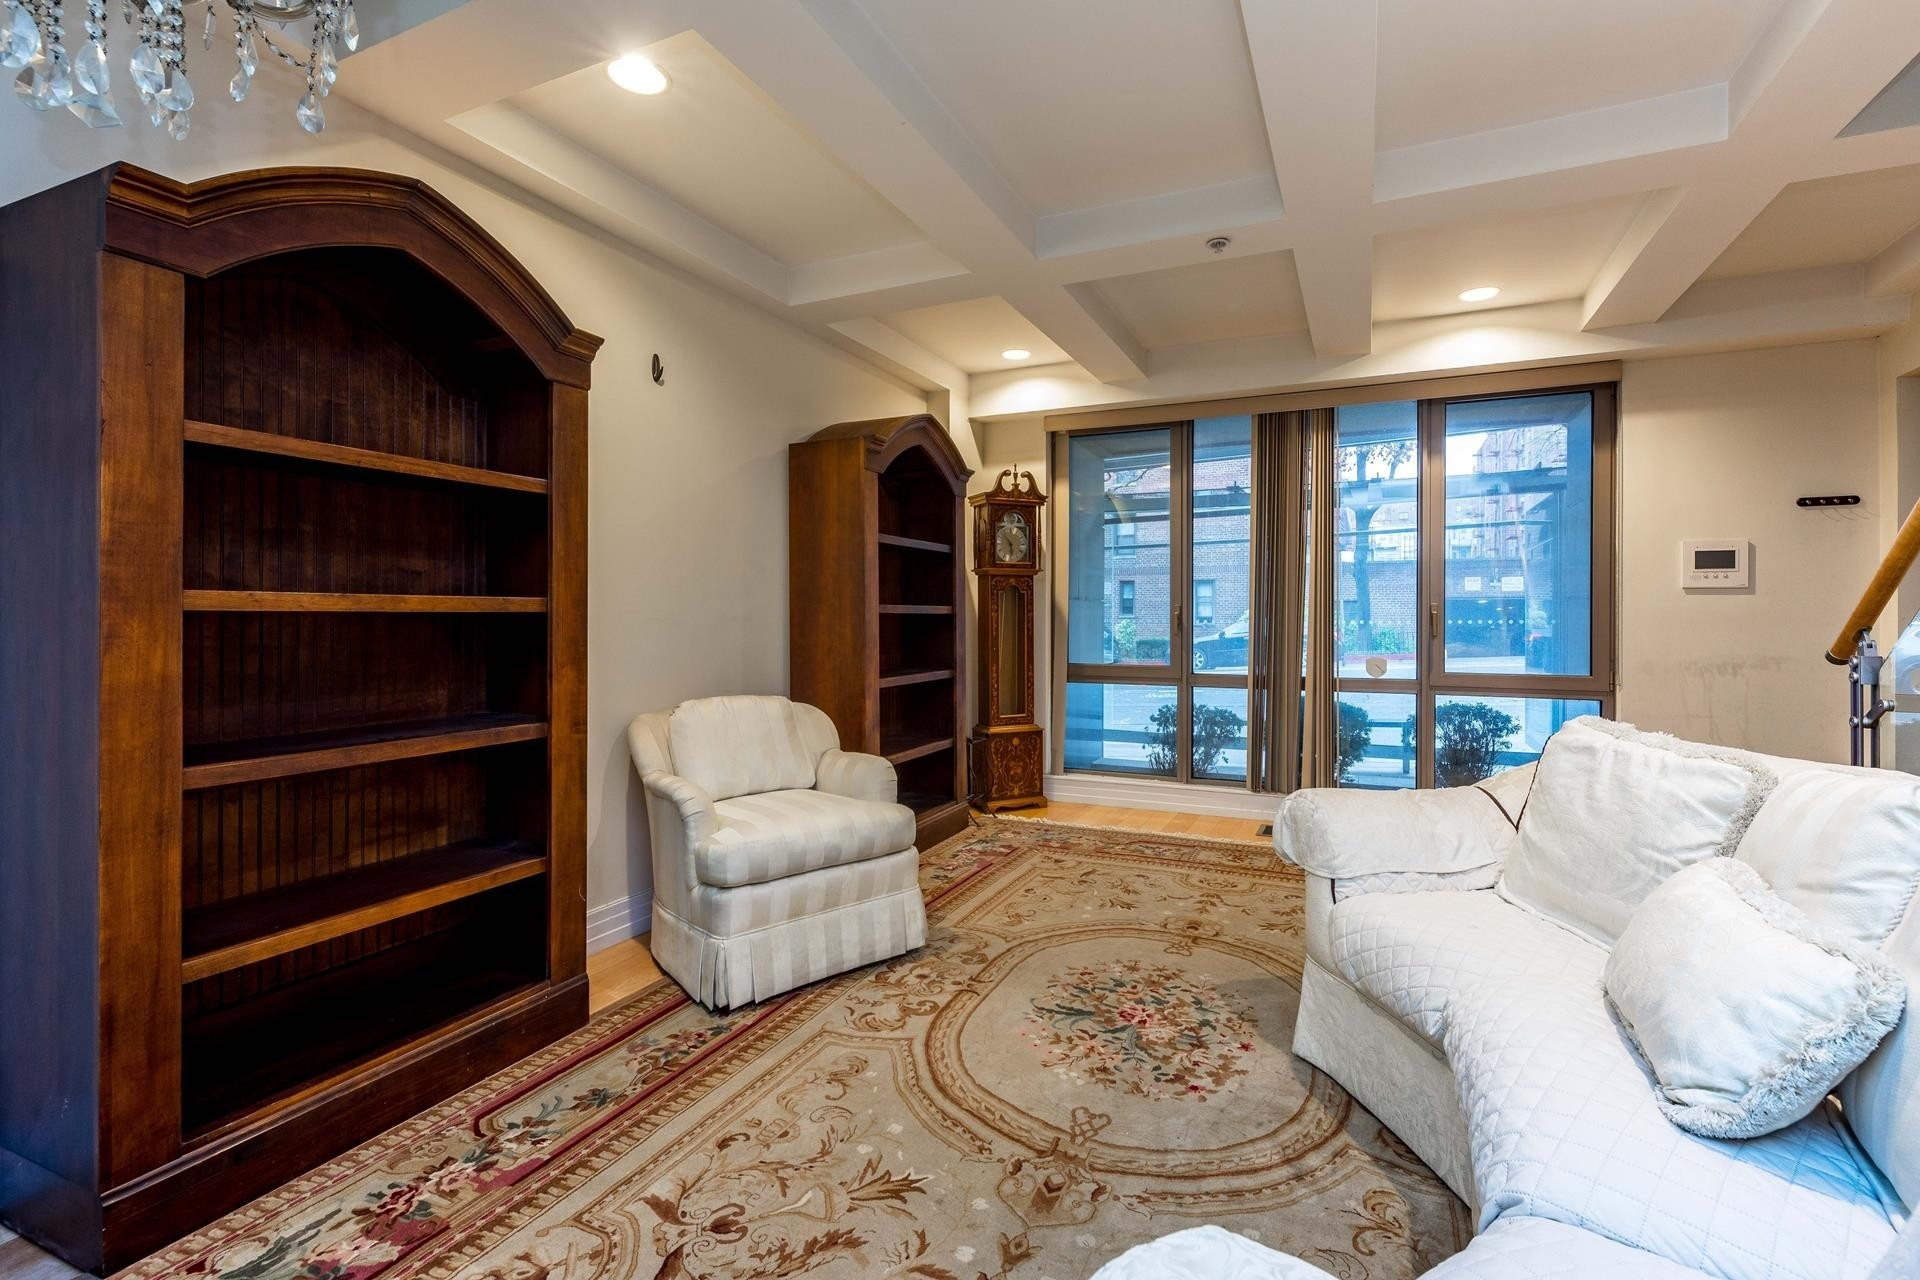 7. Condominiums for Sale at 64-05 Yellowstone Boulevard, 108 Forest Hills, Queens, NY 11375